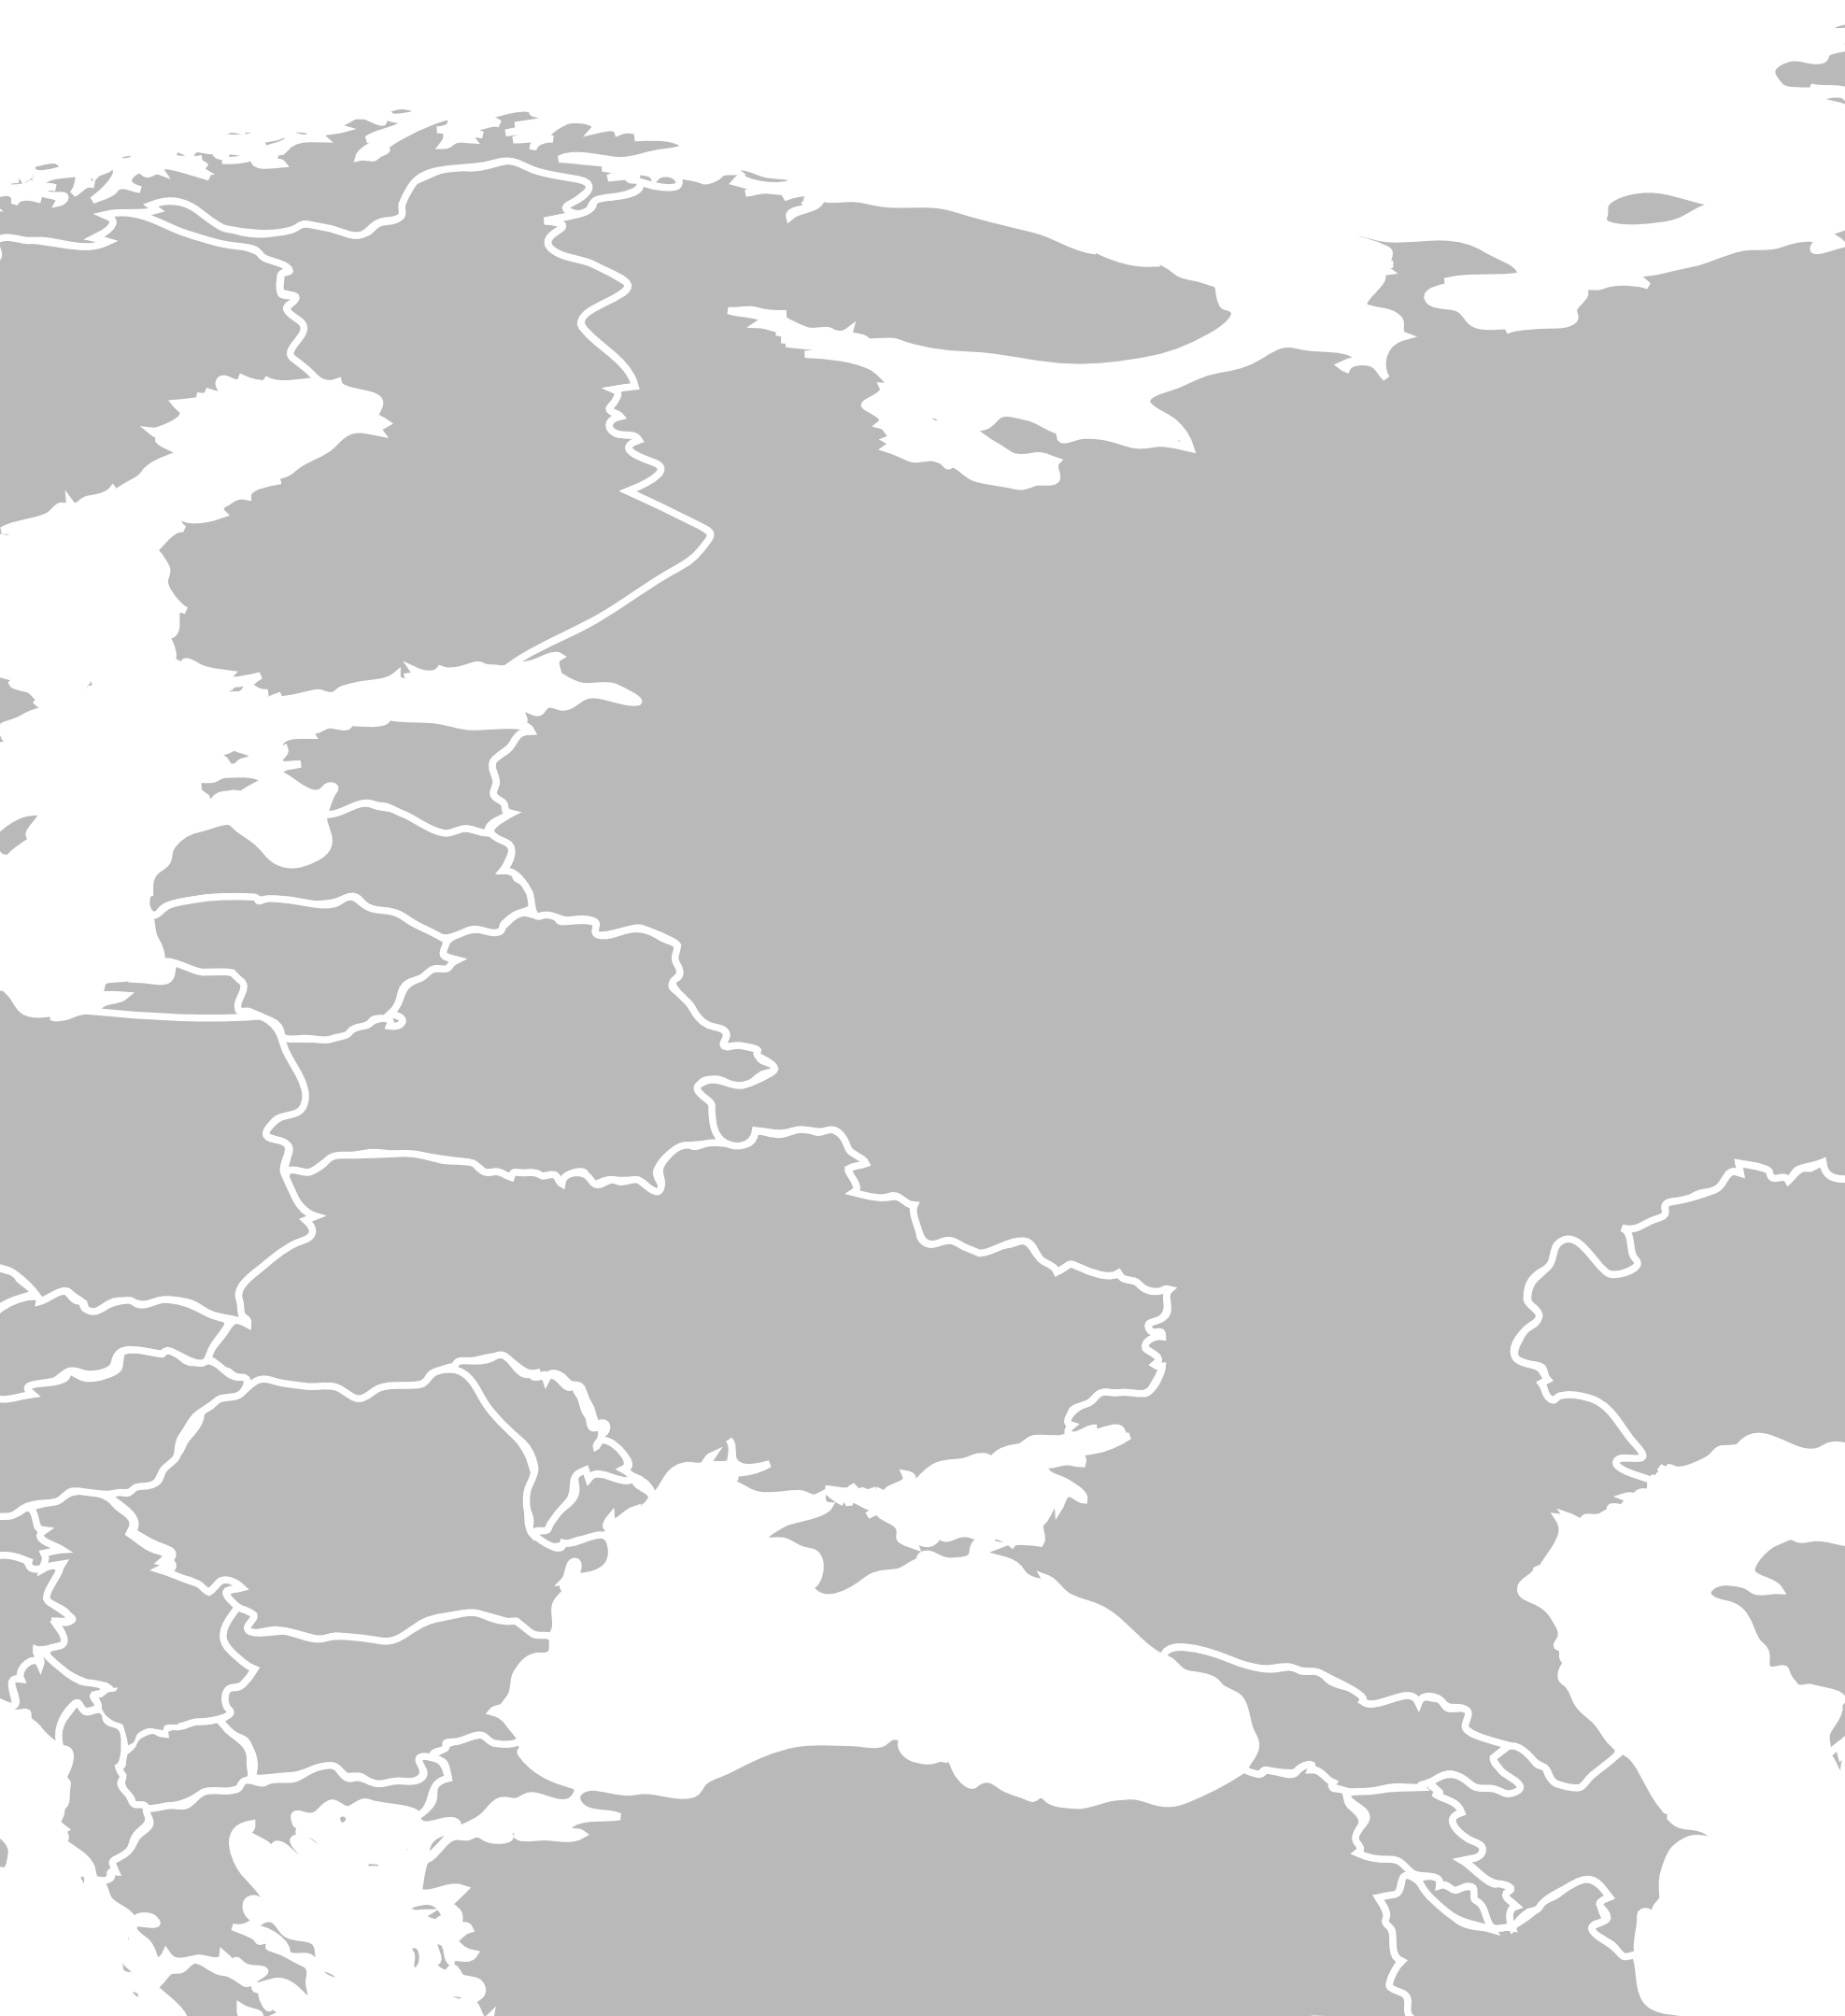 FileRussia European part location mappng  Wikimedia Commons